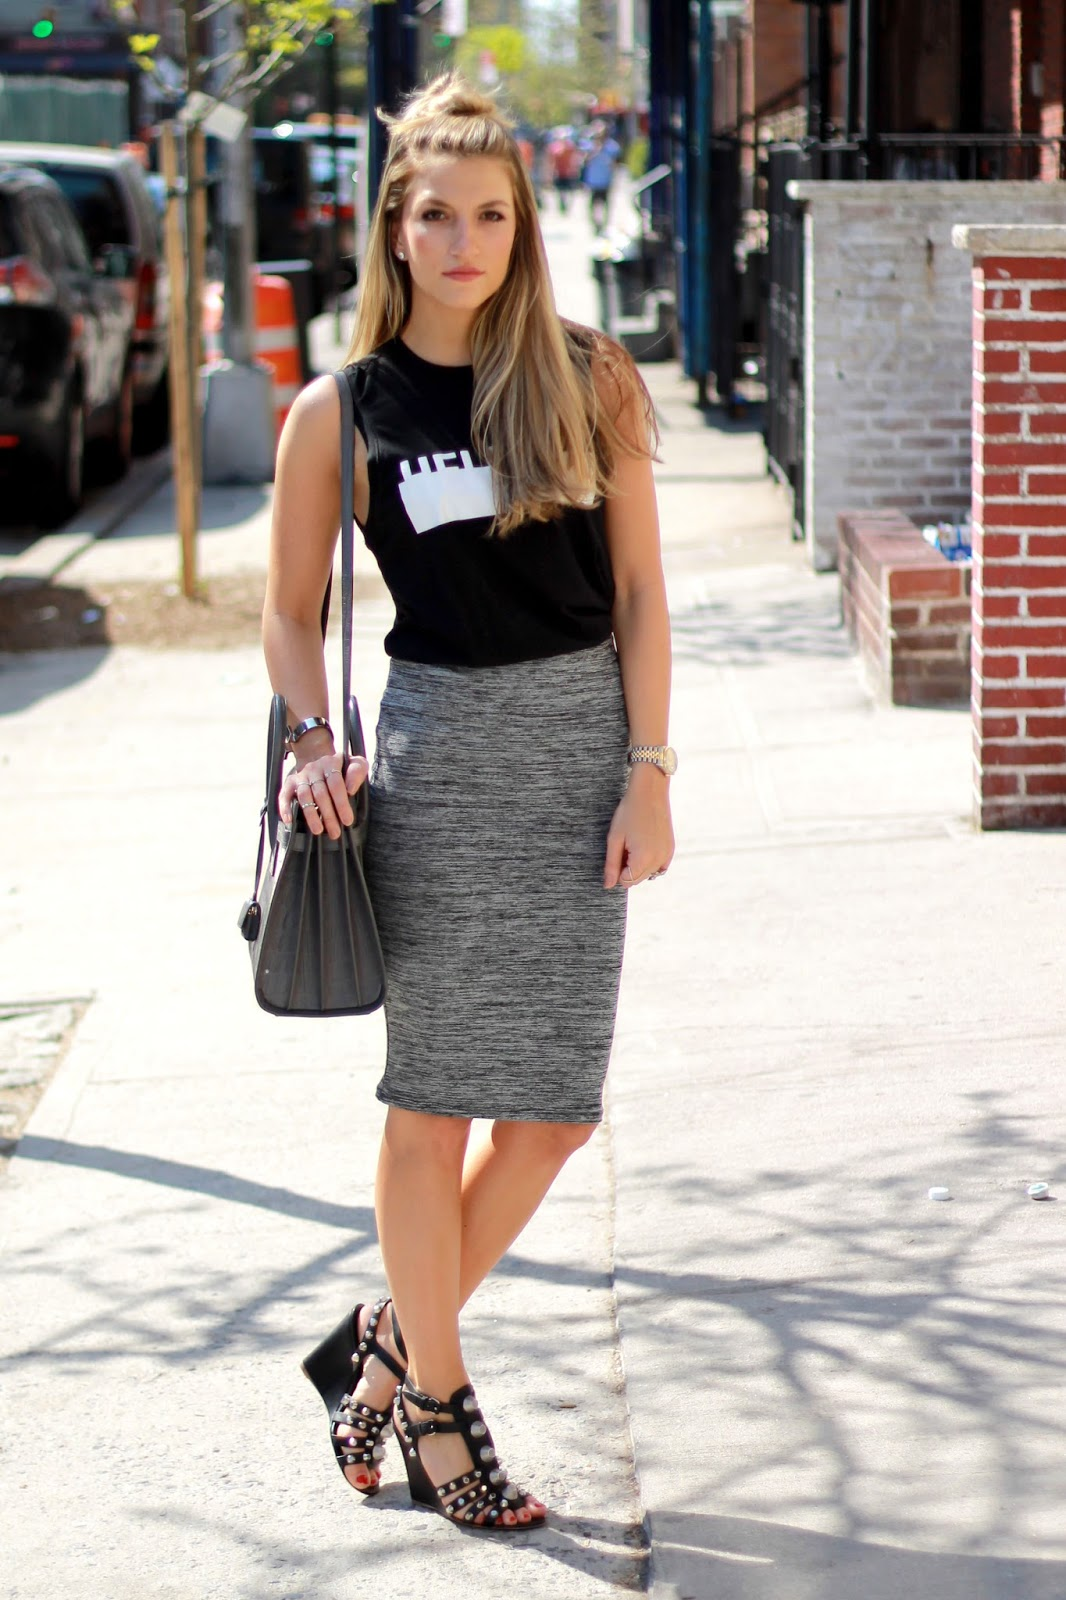 Helmut Lang Logo Tee,  Zara Pencil Skirt,  Balenciaga Arena Gladiator Wedges,  Saint Laurent Croc Sac de Jour